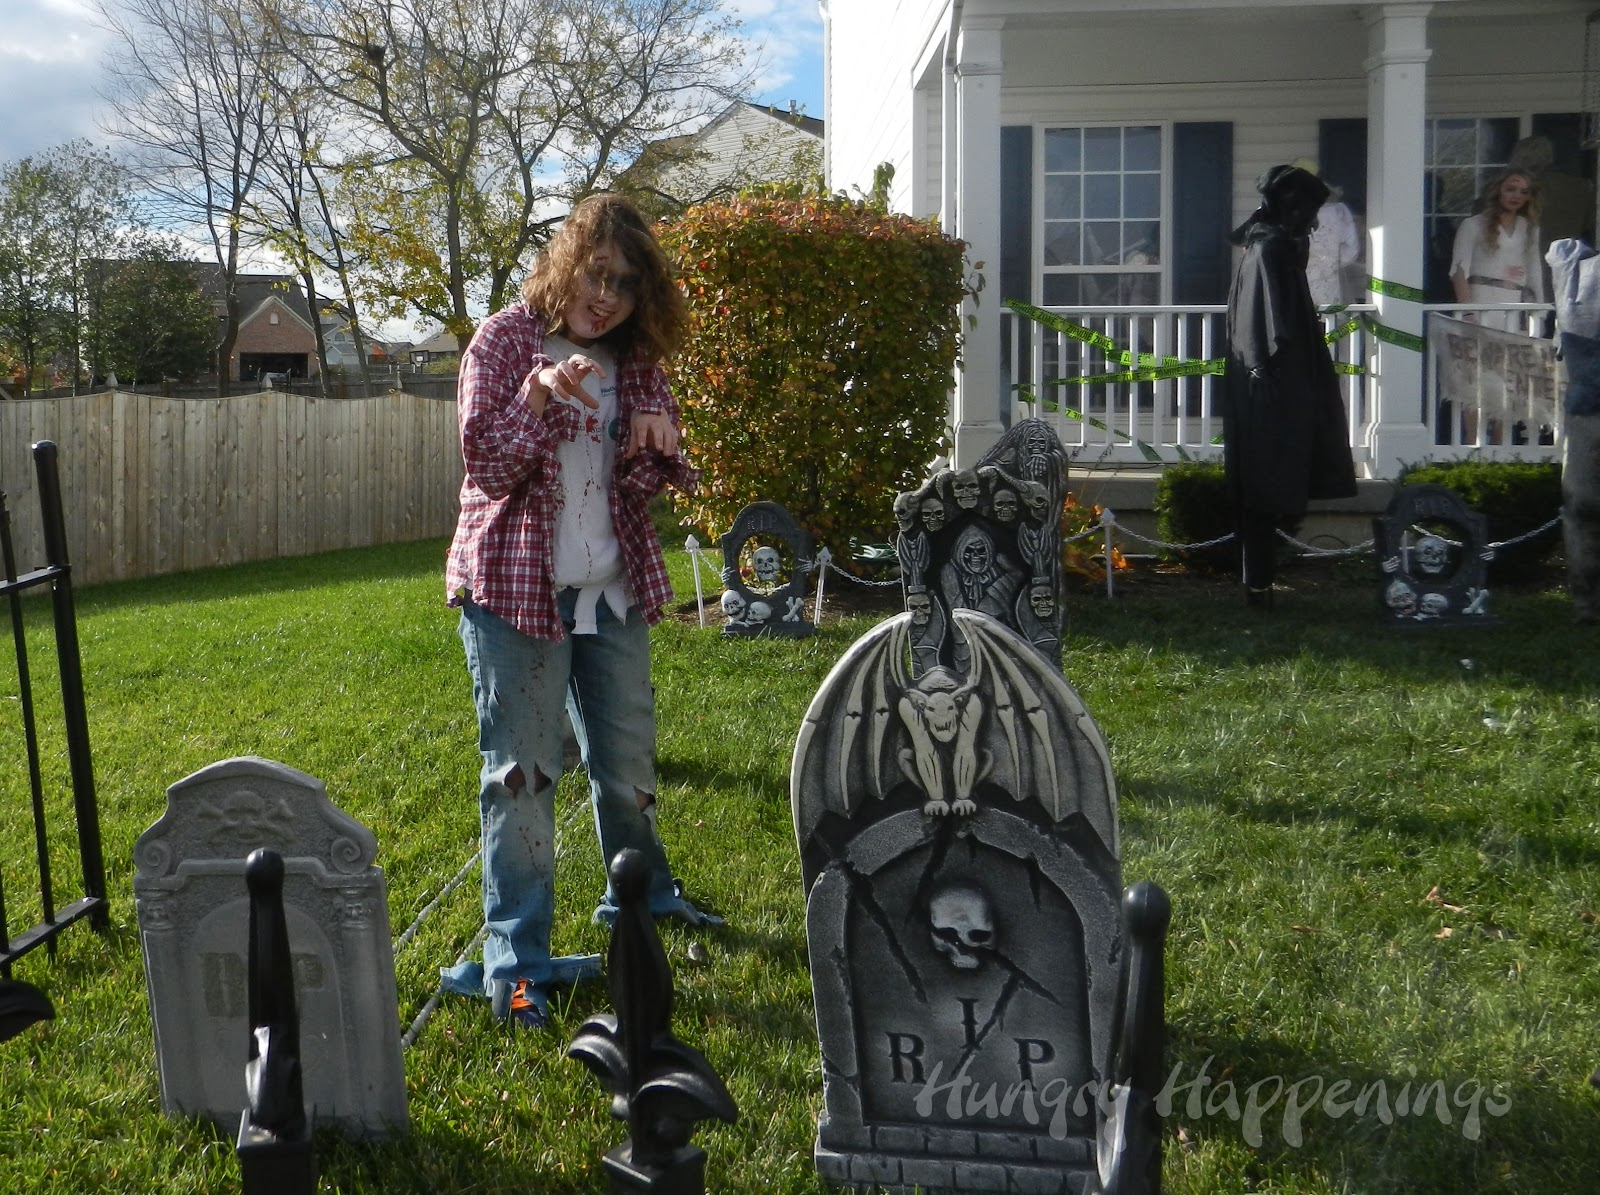 Halloween front garden ideas - Zombie Party Party Planning Ideas For Your Zombie Themed Event Zombie Party Party Planning Ideas For Your Zombie Themed Event Halloween Decorations